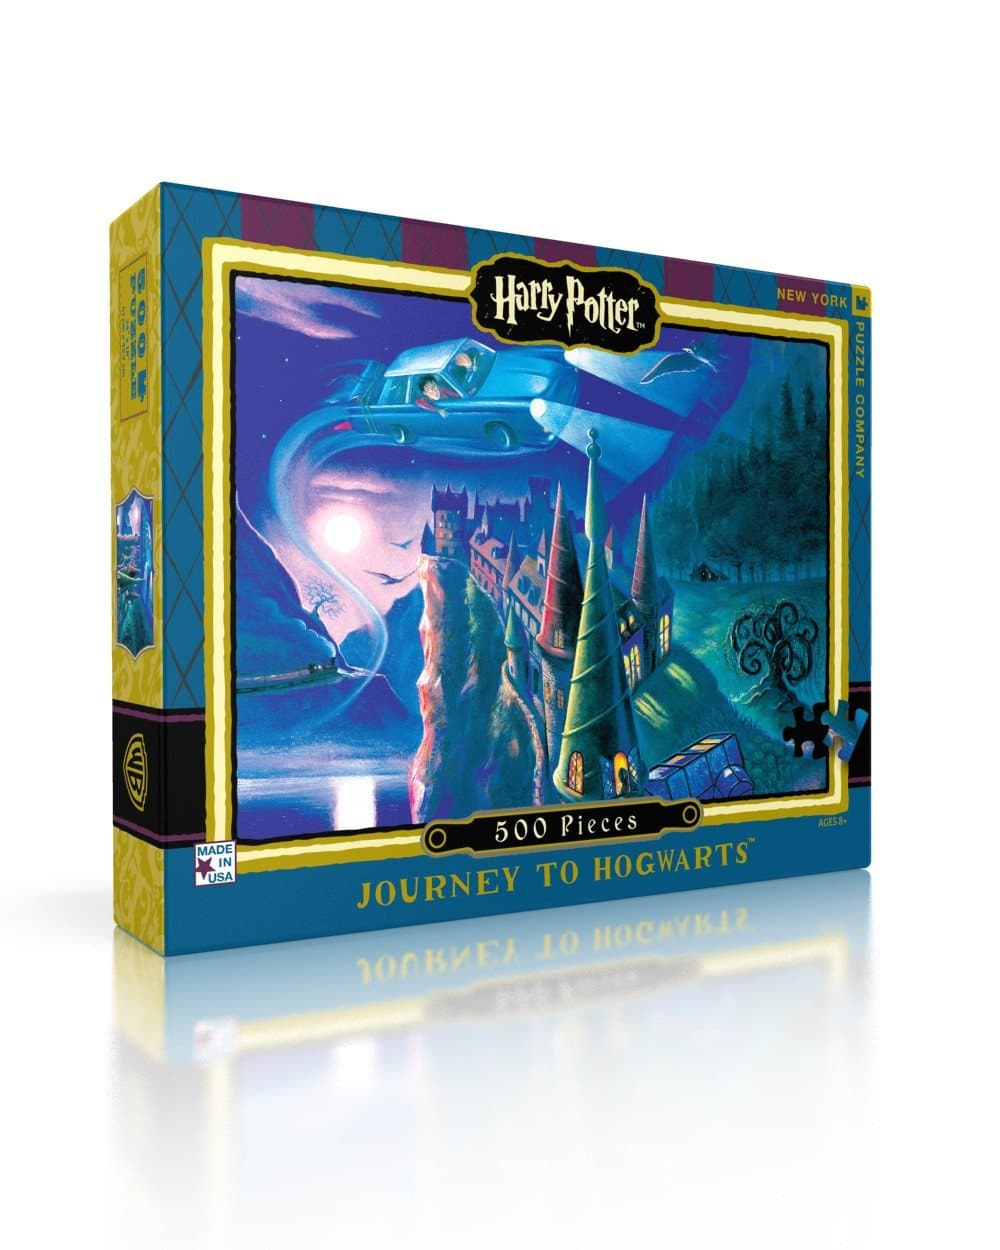 Harry Potter - Journey to Hogwarts Puzzle